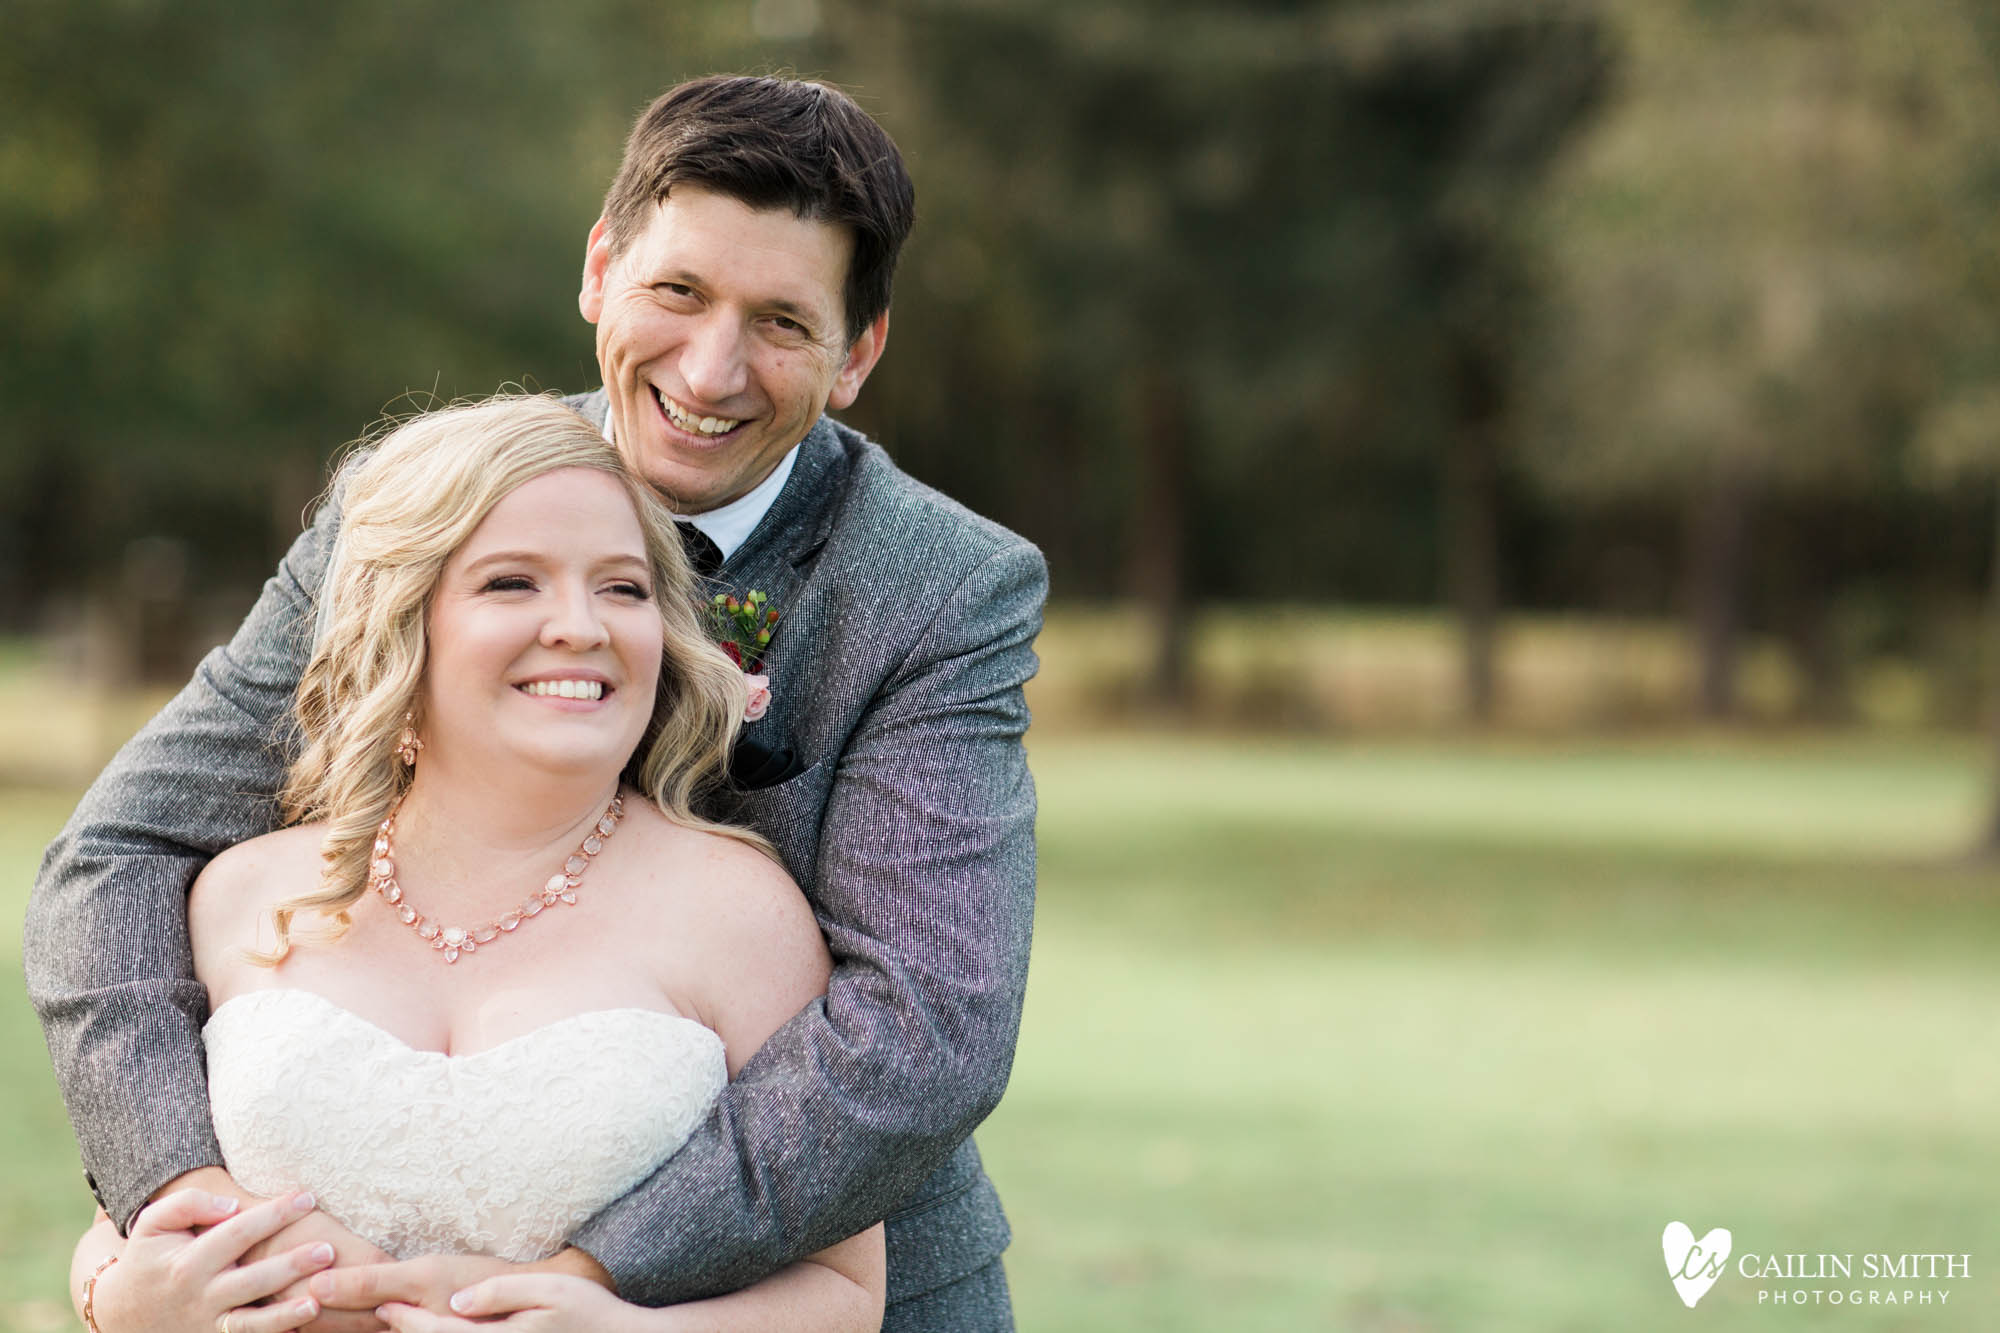 Christie_Nathan_Wedding_Photography_0030.jpg